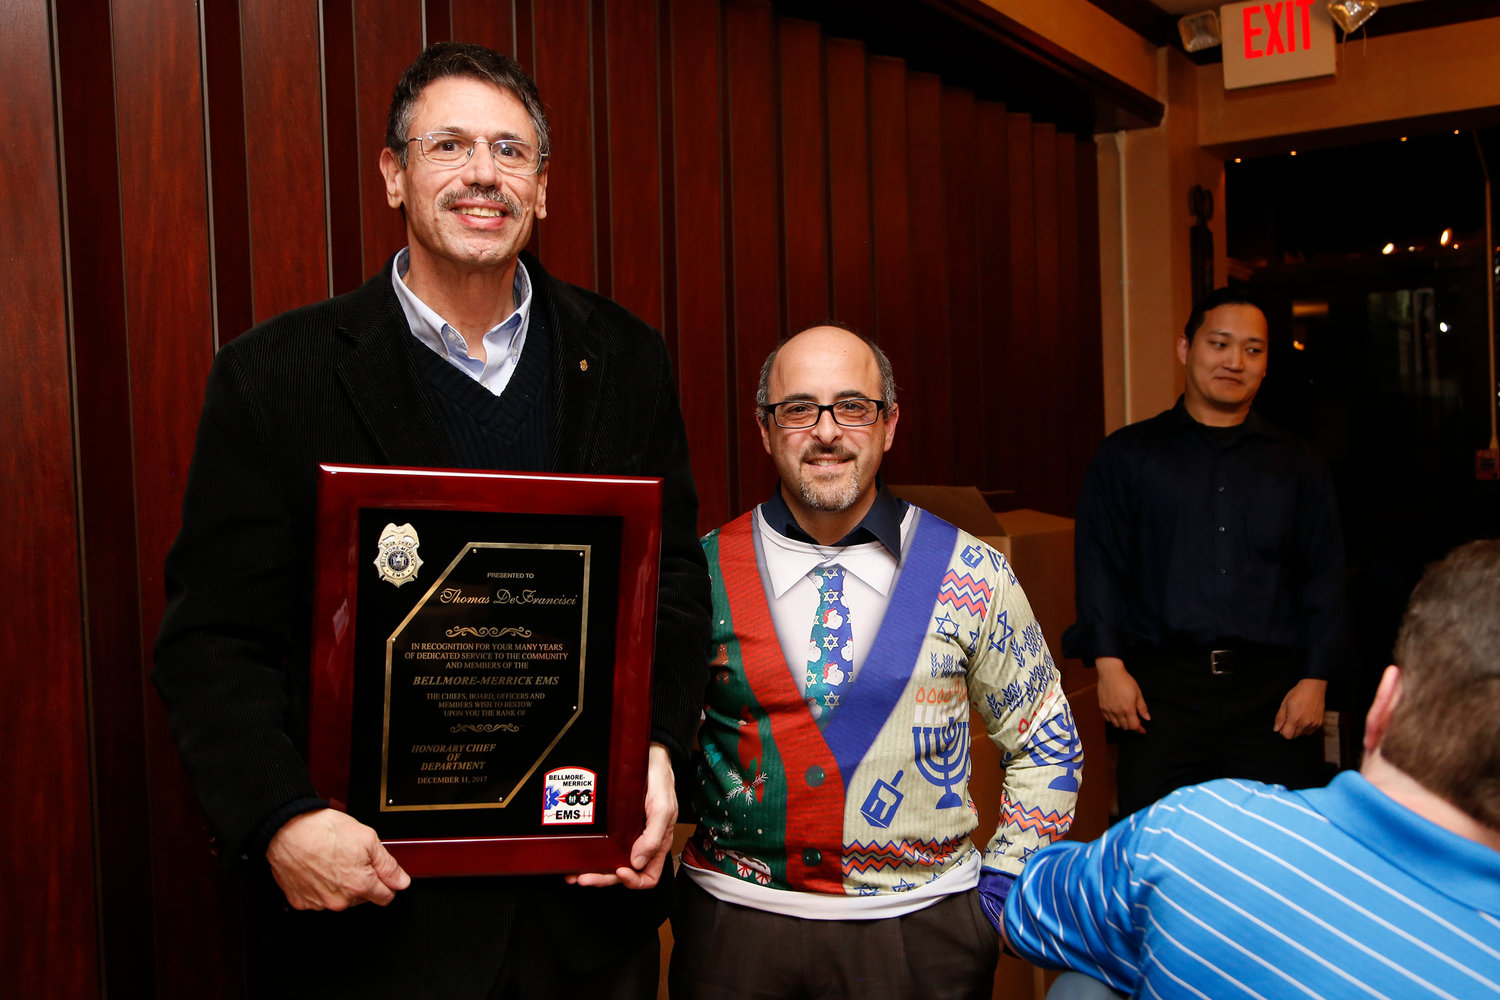 Scott Resnik, right, chief of Bellmore-Merrick Emergency Medical Services, was on hand when DeFrancisci was named an honorary chief of the organization.